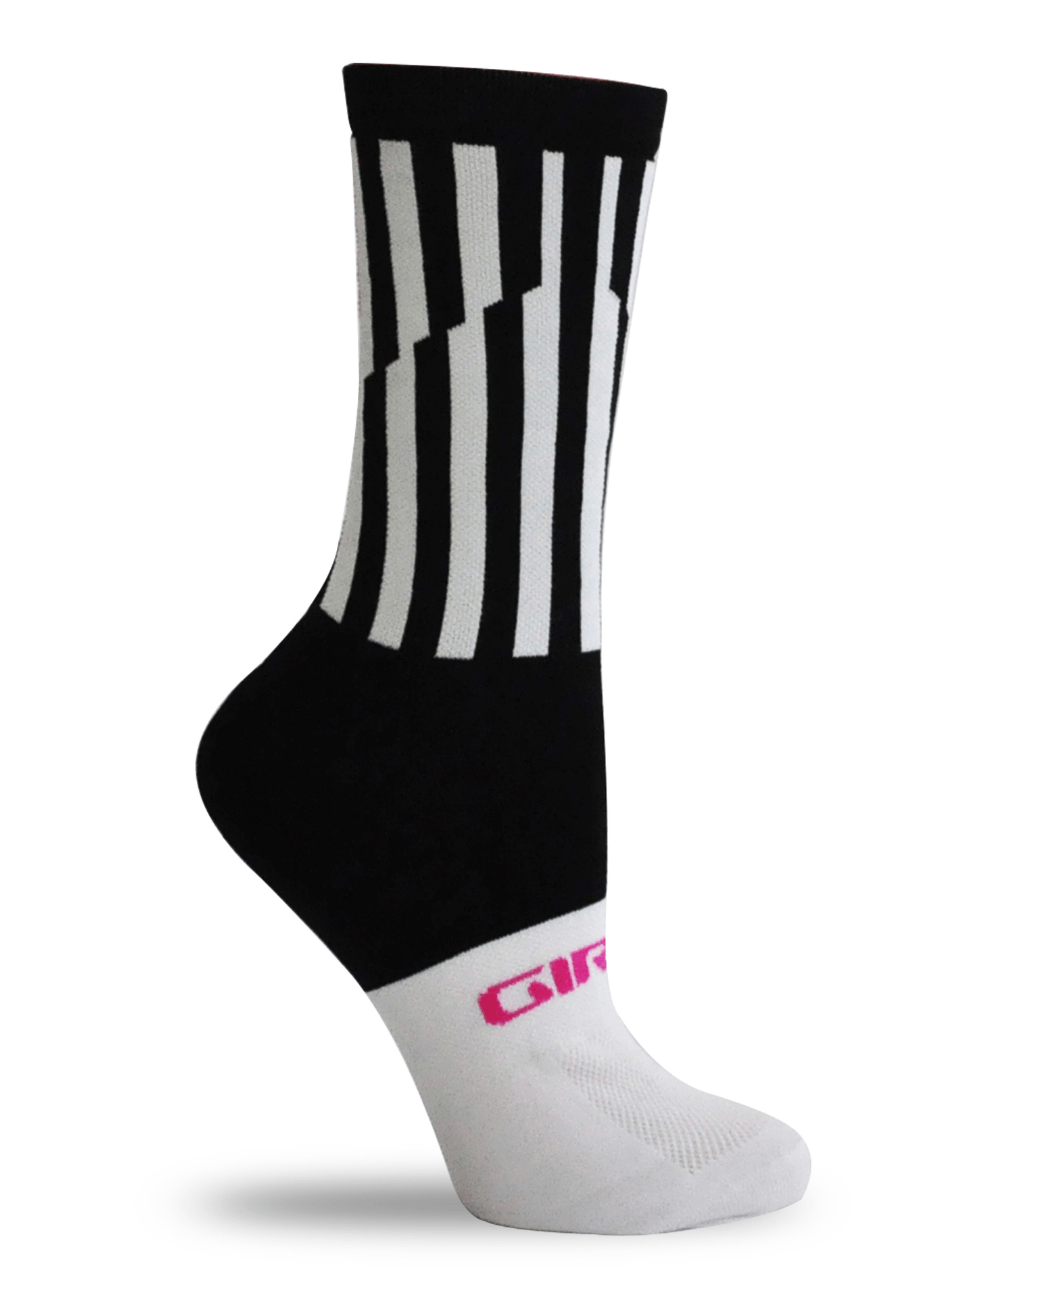 "GIRO COMP HIGH RISE - 6"" Cuff Sock - White / Black LINES"